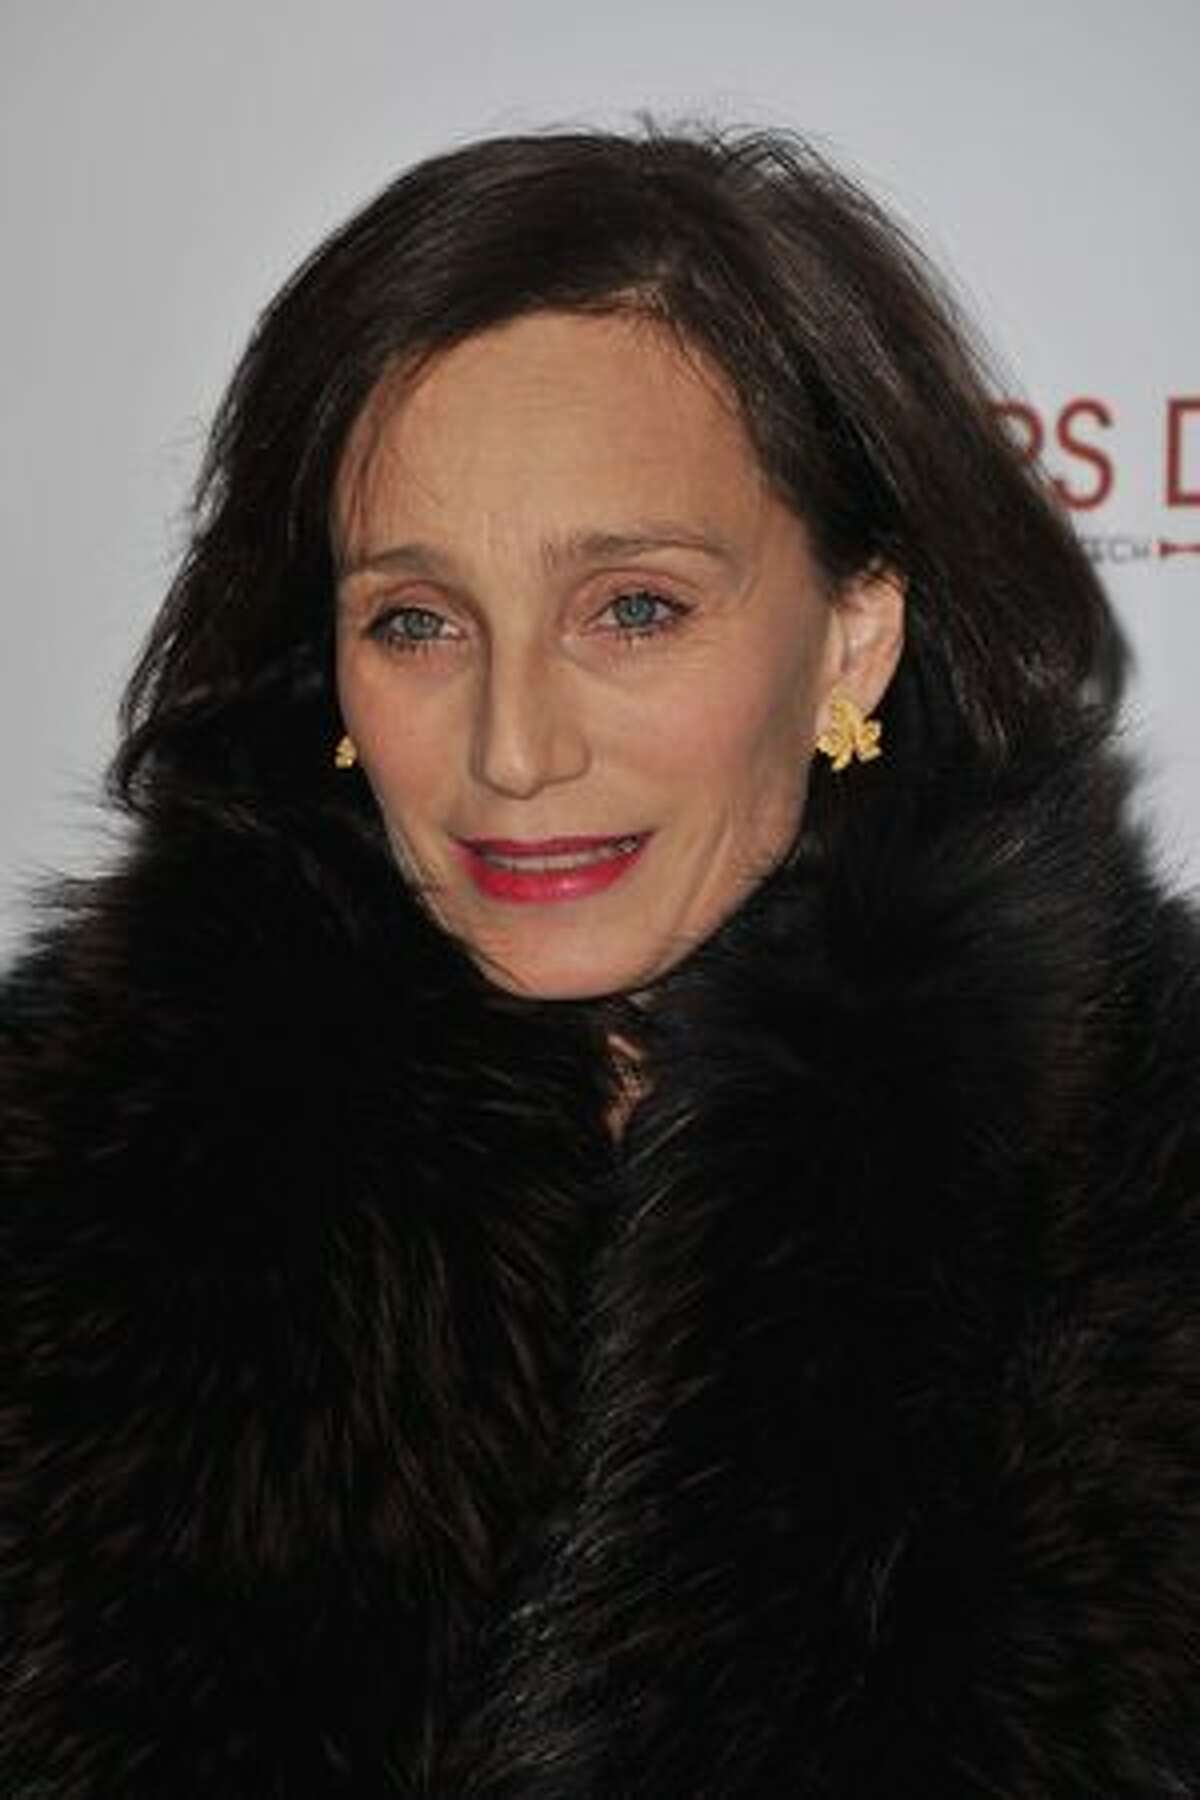 Actress Kristin Scott Thomas attends the Paris Premiere of the film